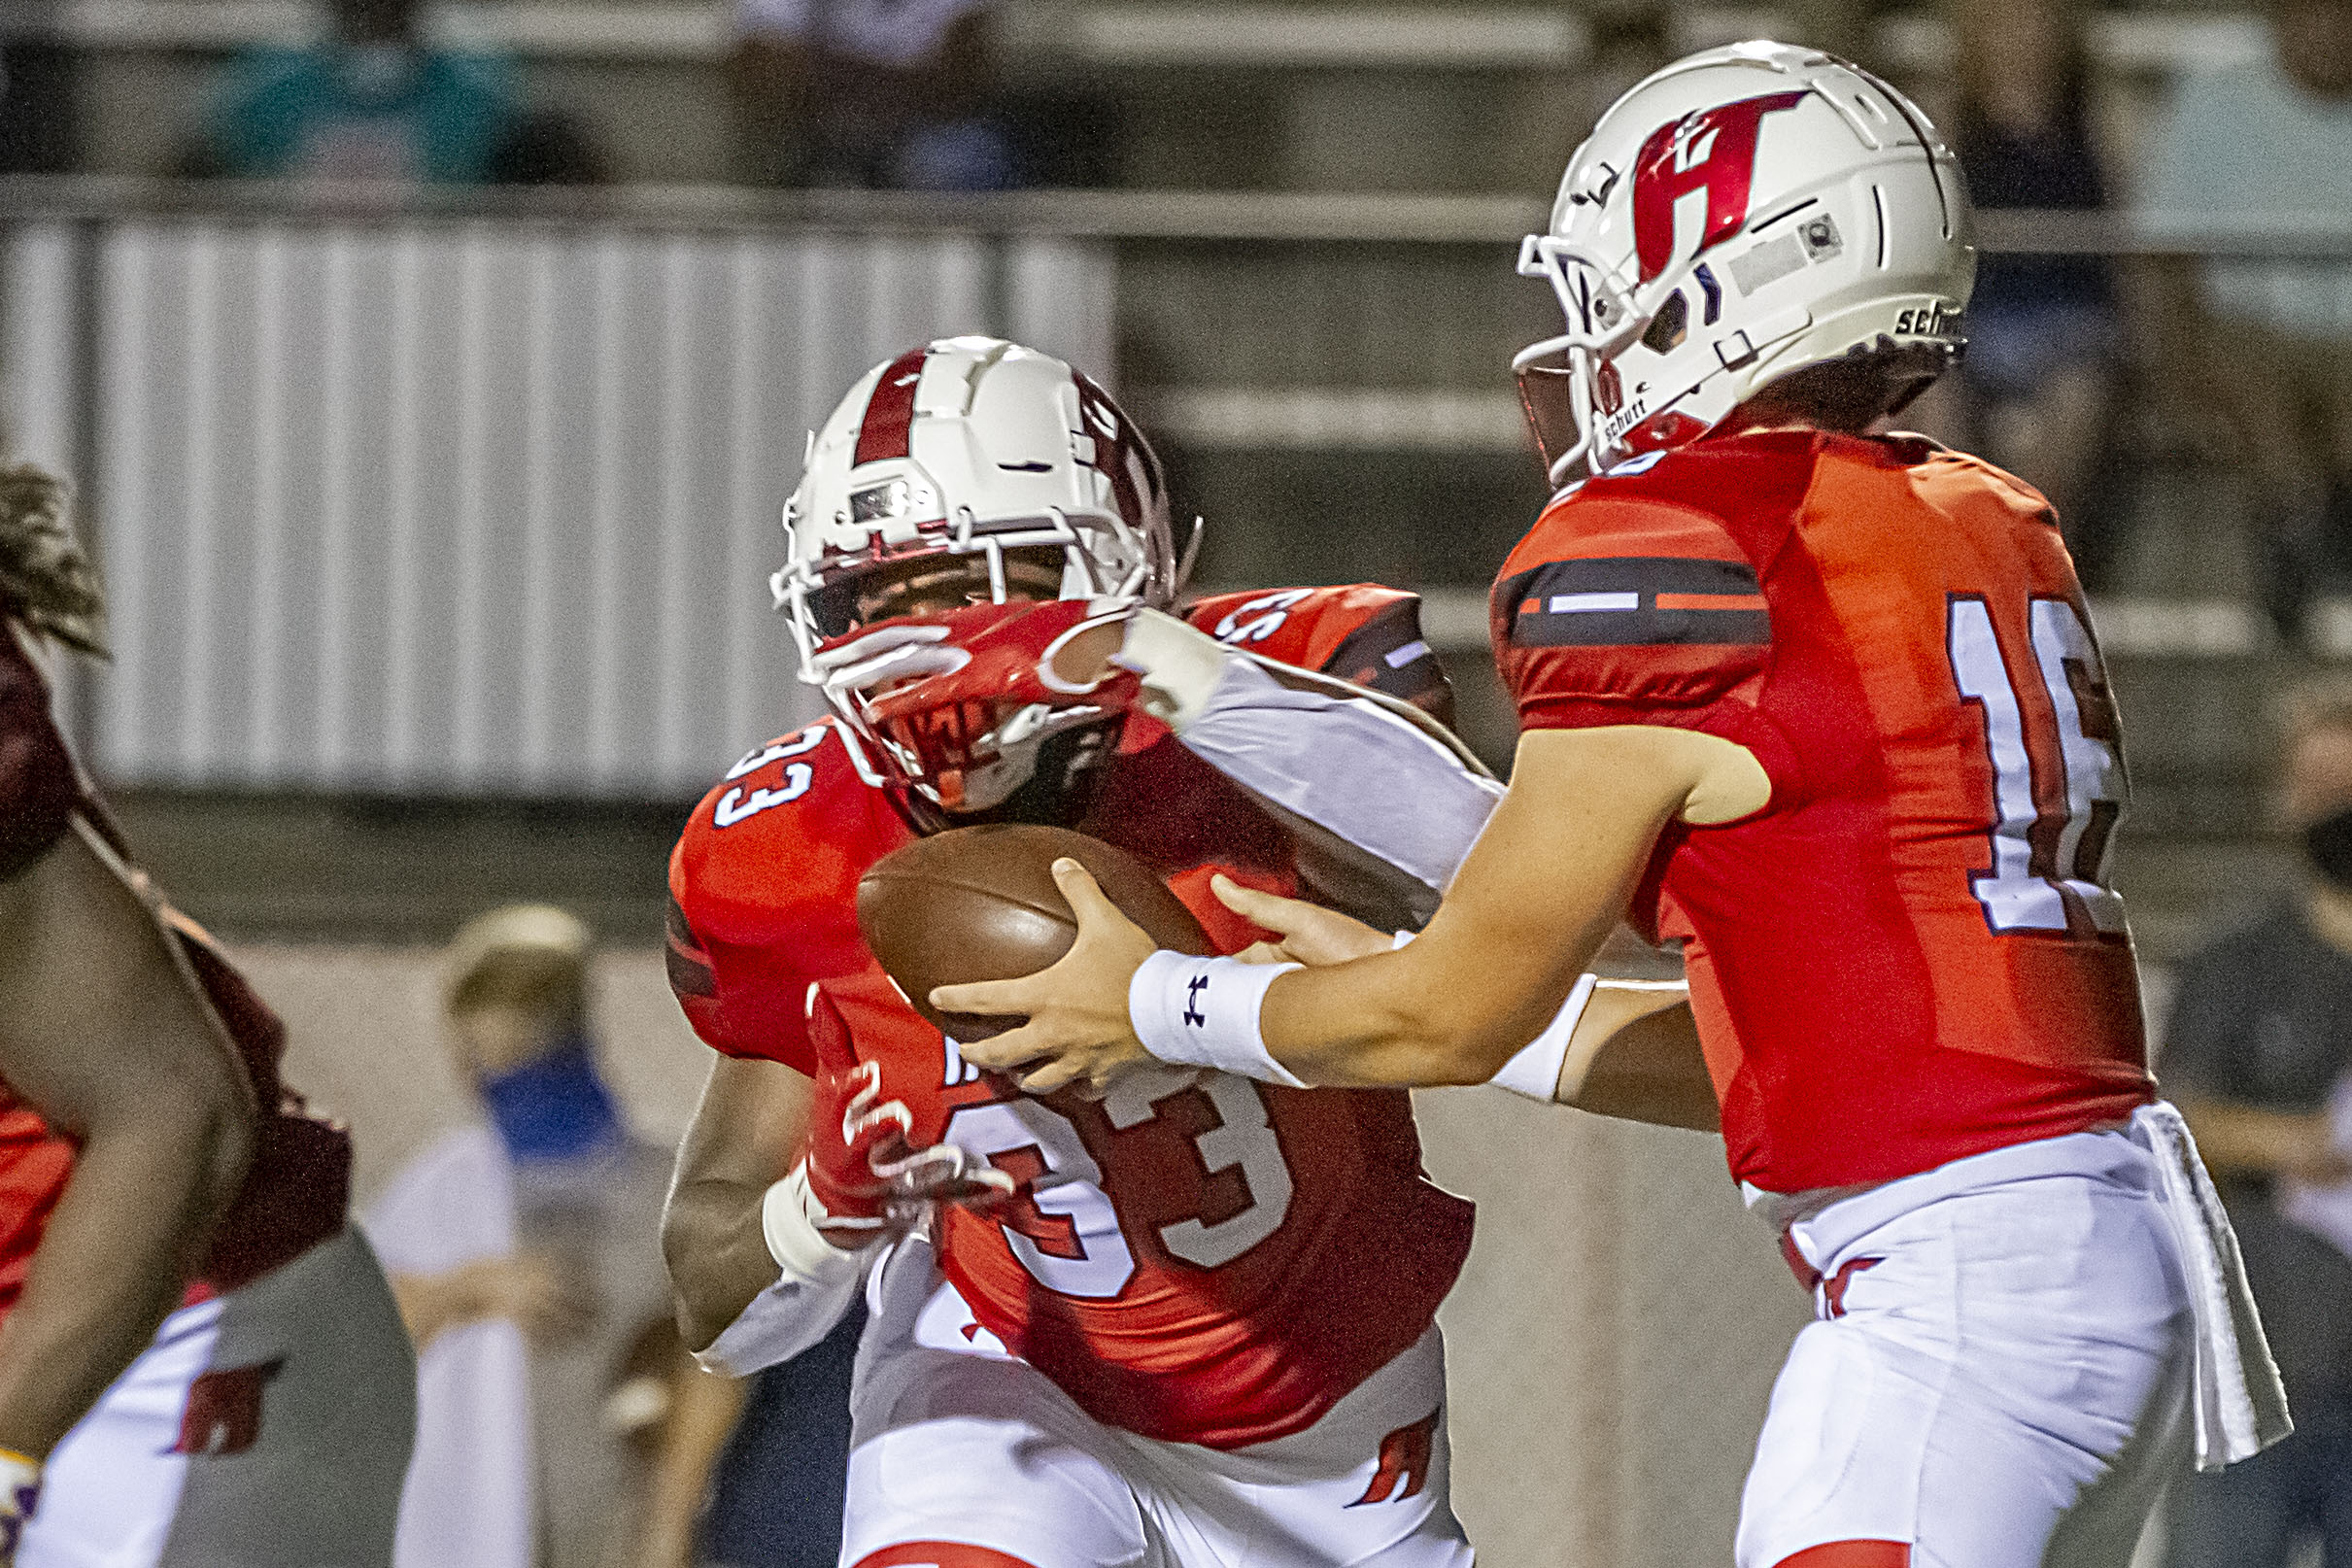 For Hewitt-Trussville, a chance for a special season